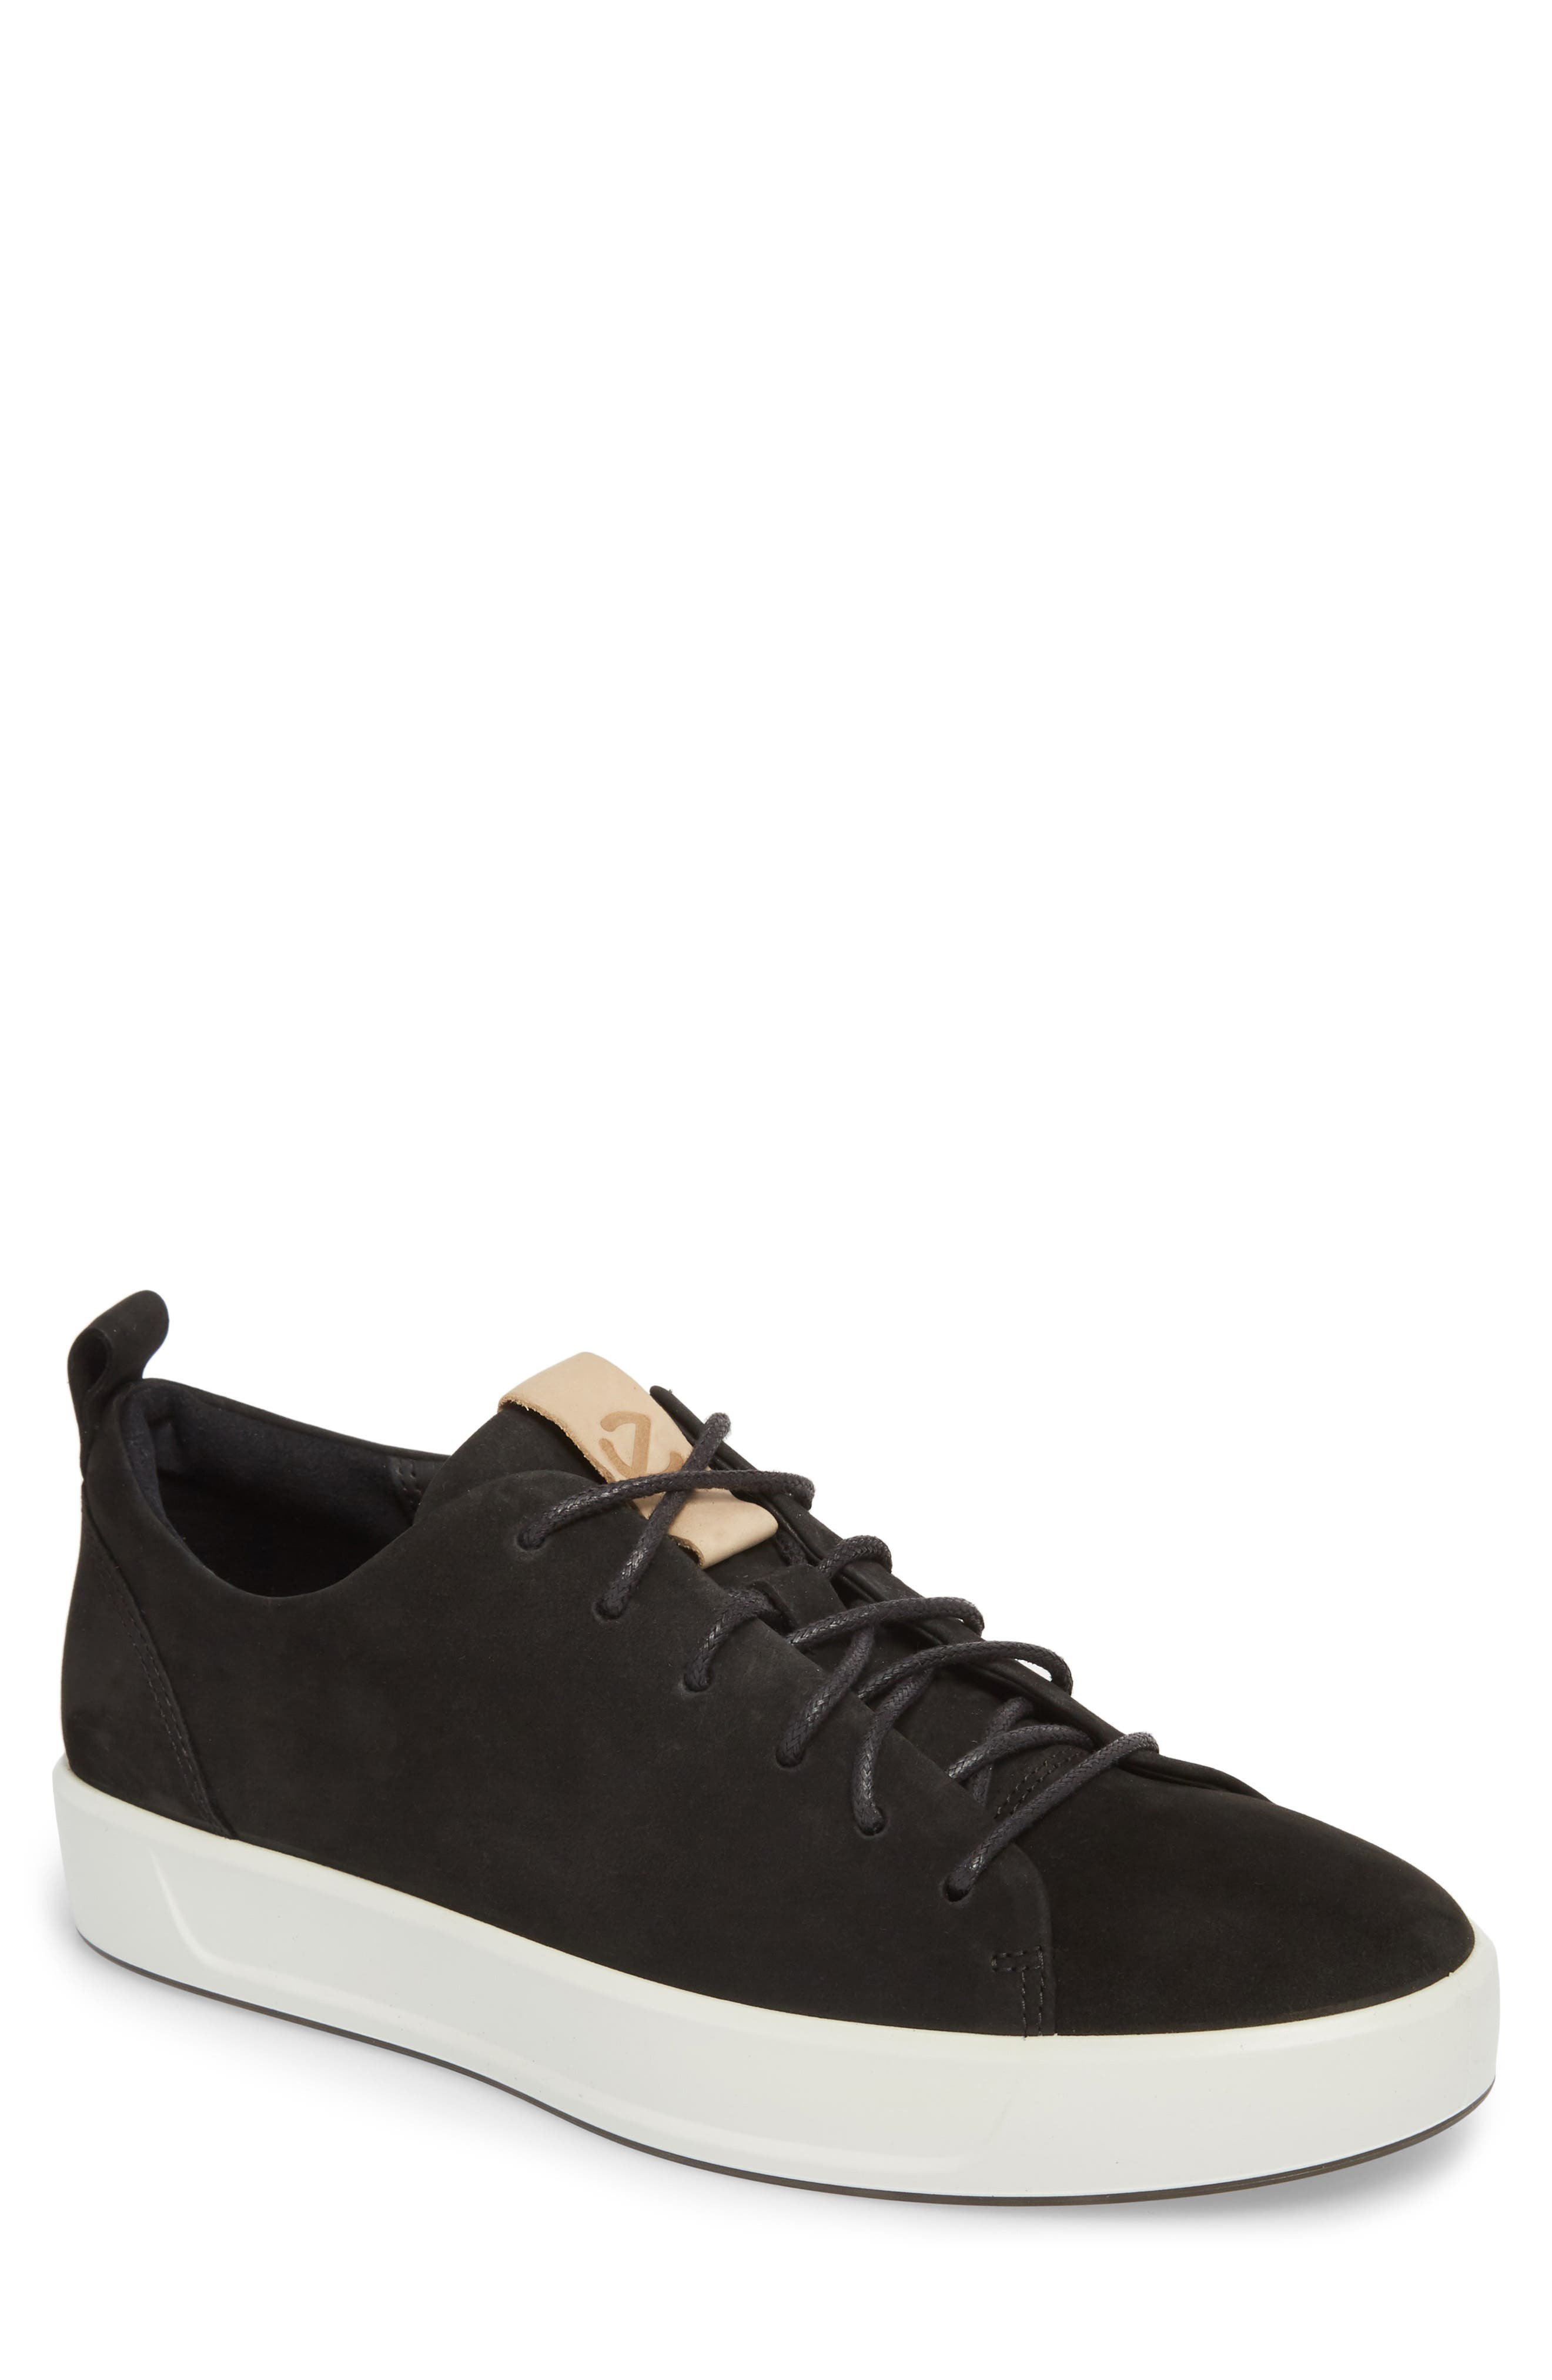 Alternate Image 1 Selected - ECCO Soft 8 Sneaker (Men)